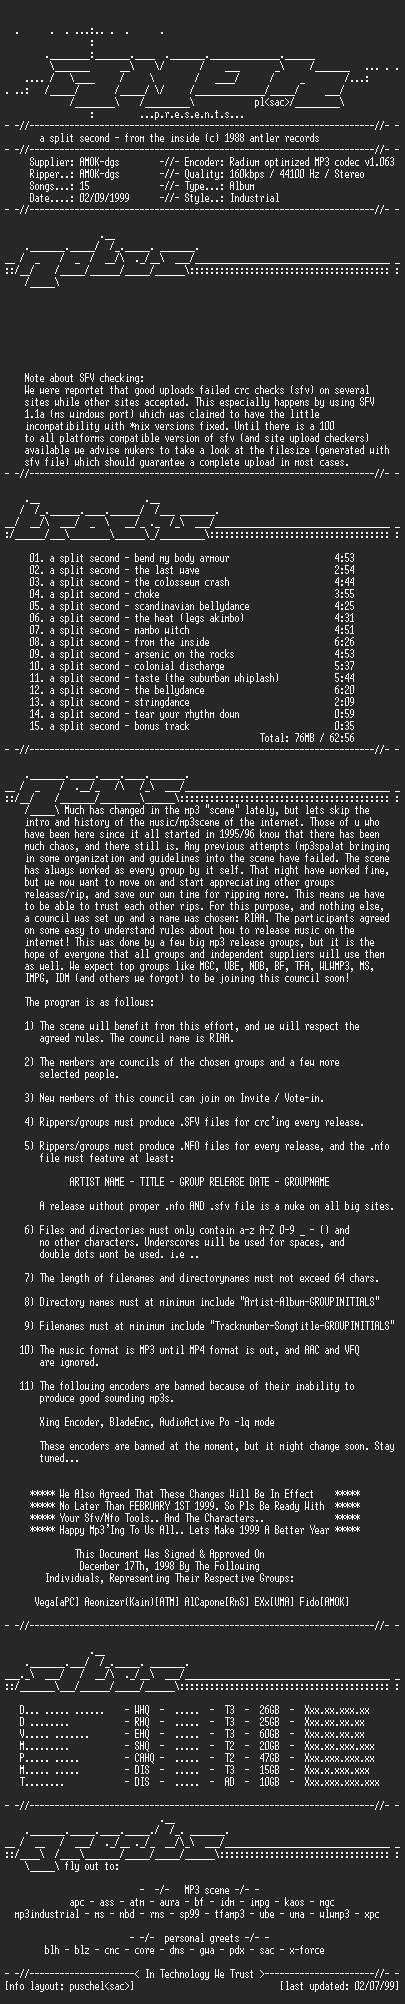 NFO file for A.Split.Second-From.The.Inside-(1988)-AMOK